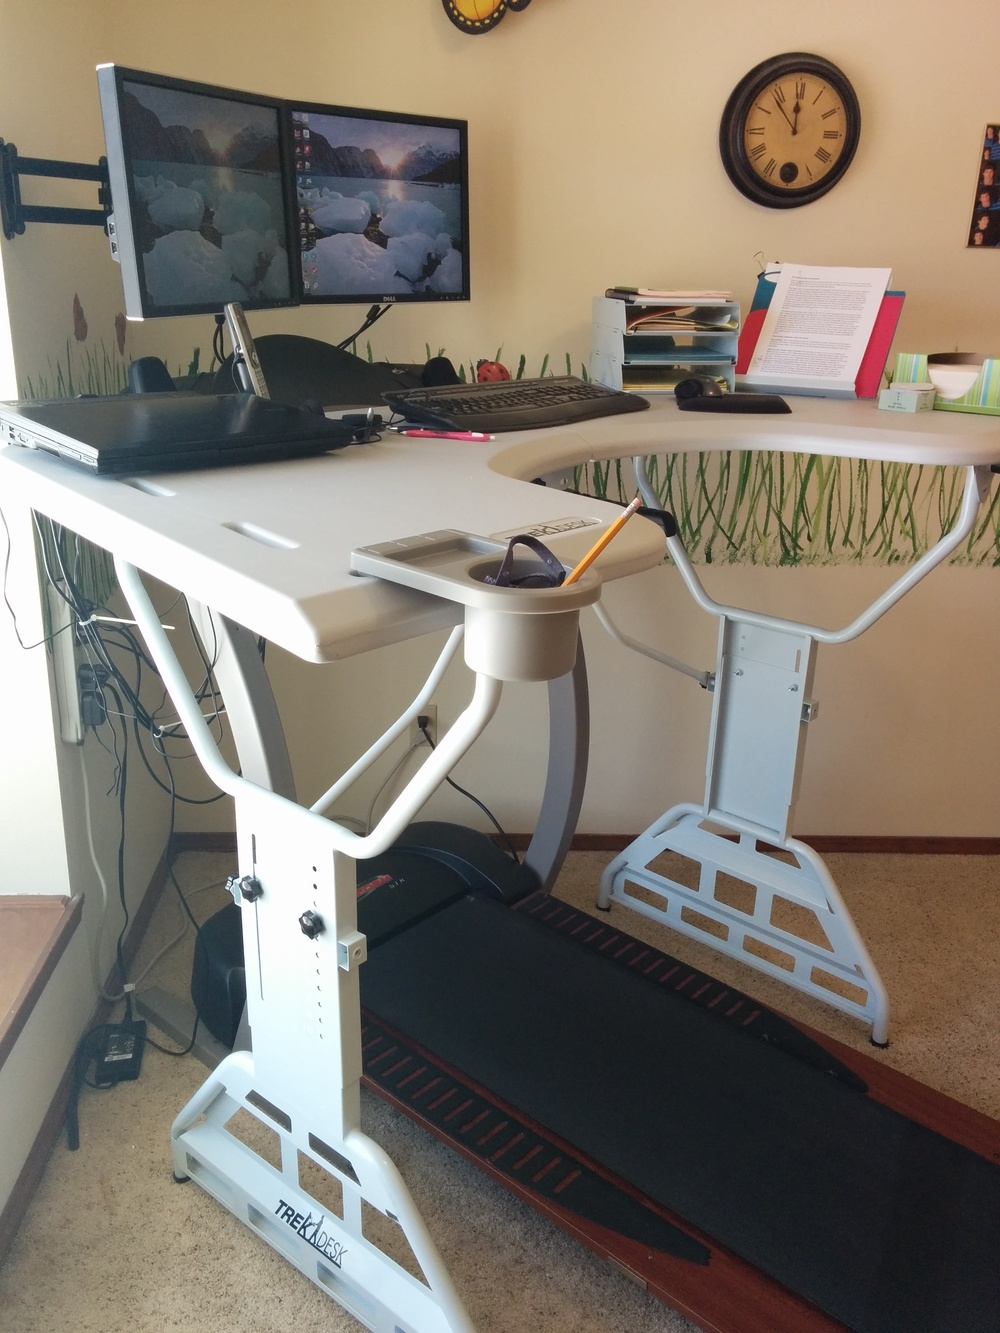 My treadmill desk